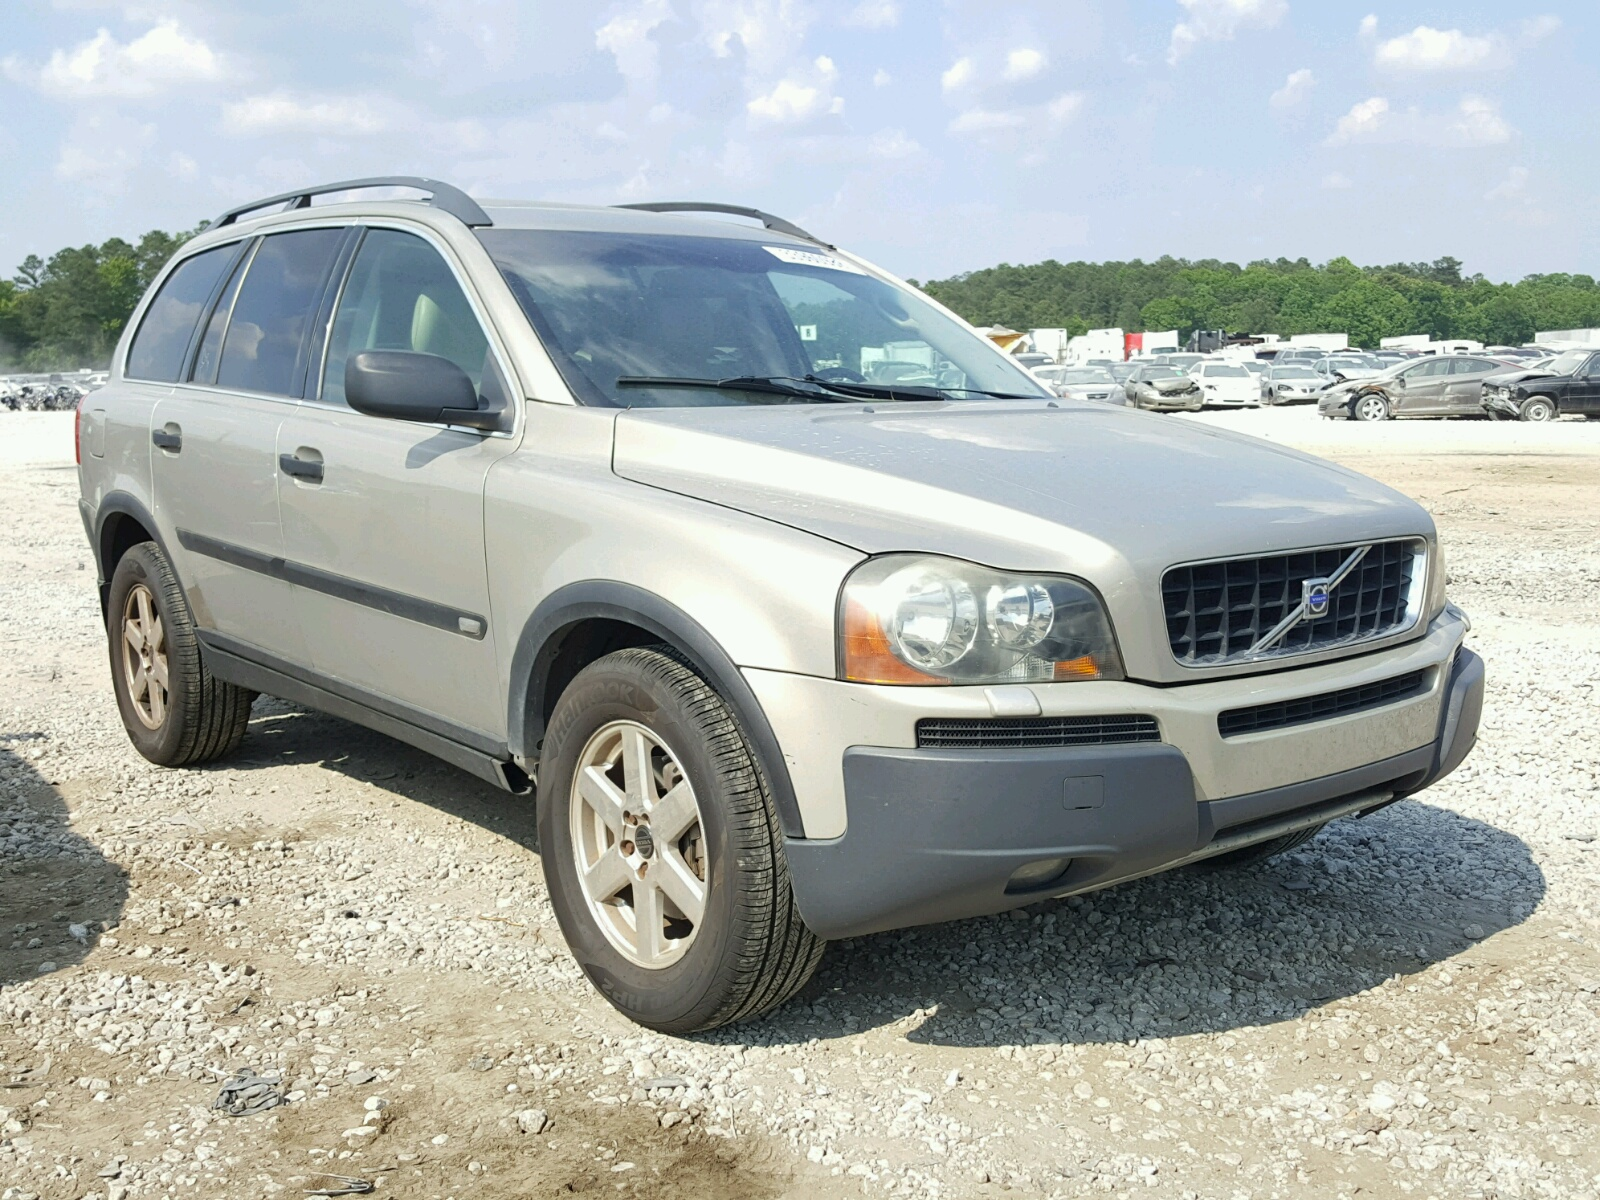 extinction for crawled of how here cars image the from us back sale s volvo brink in